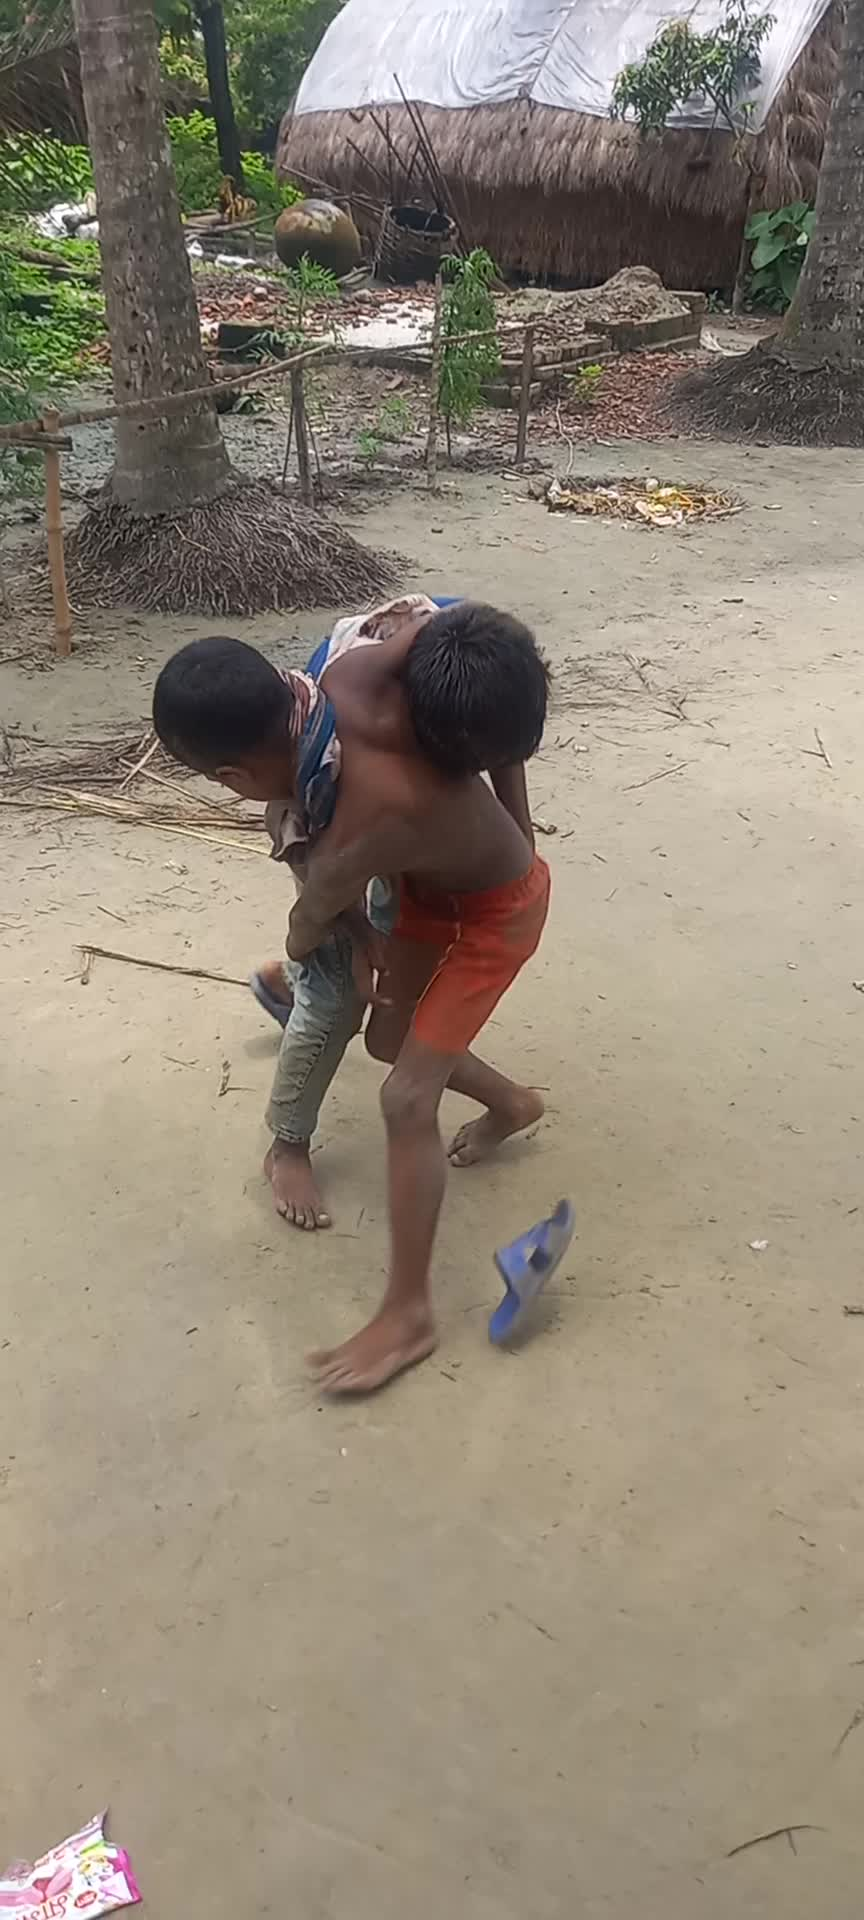 I was making a video when some children of the village were fighting while playing here.